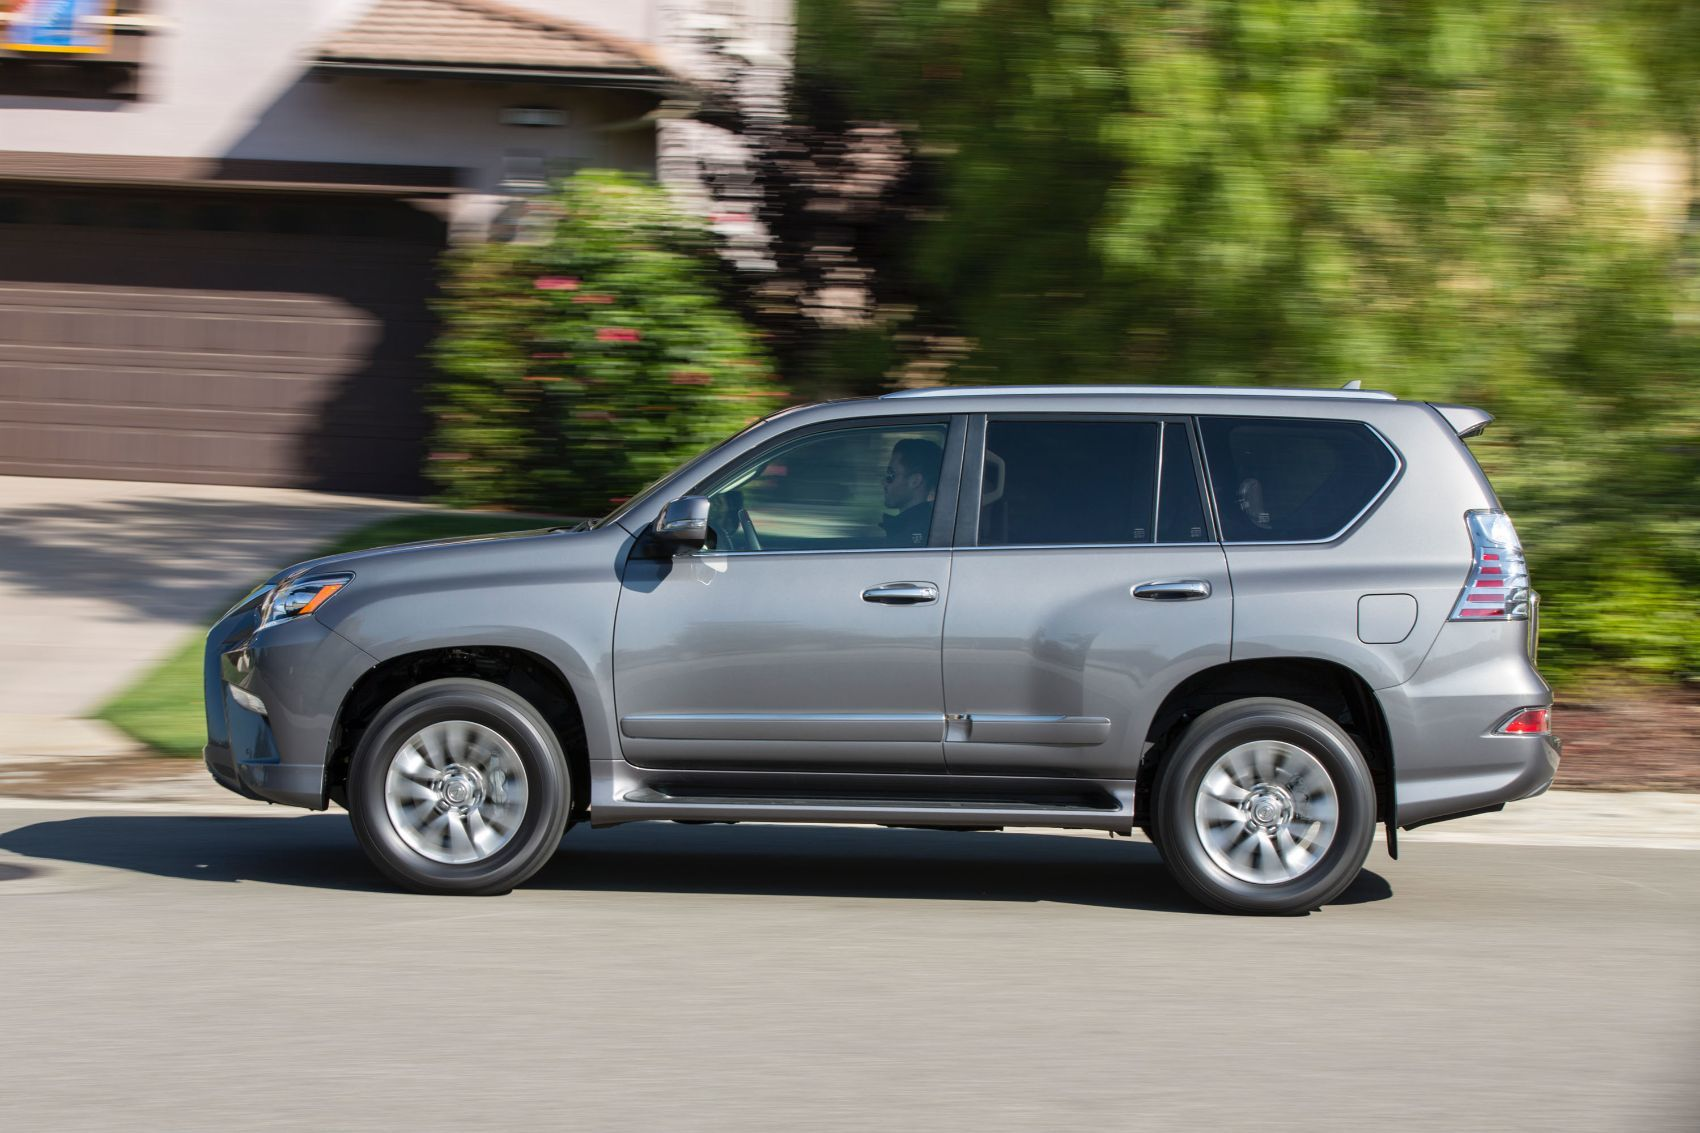 2019 Lexus GX 460 Review: Solid But Long In The Tooth 15